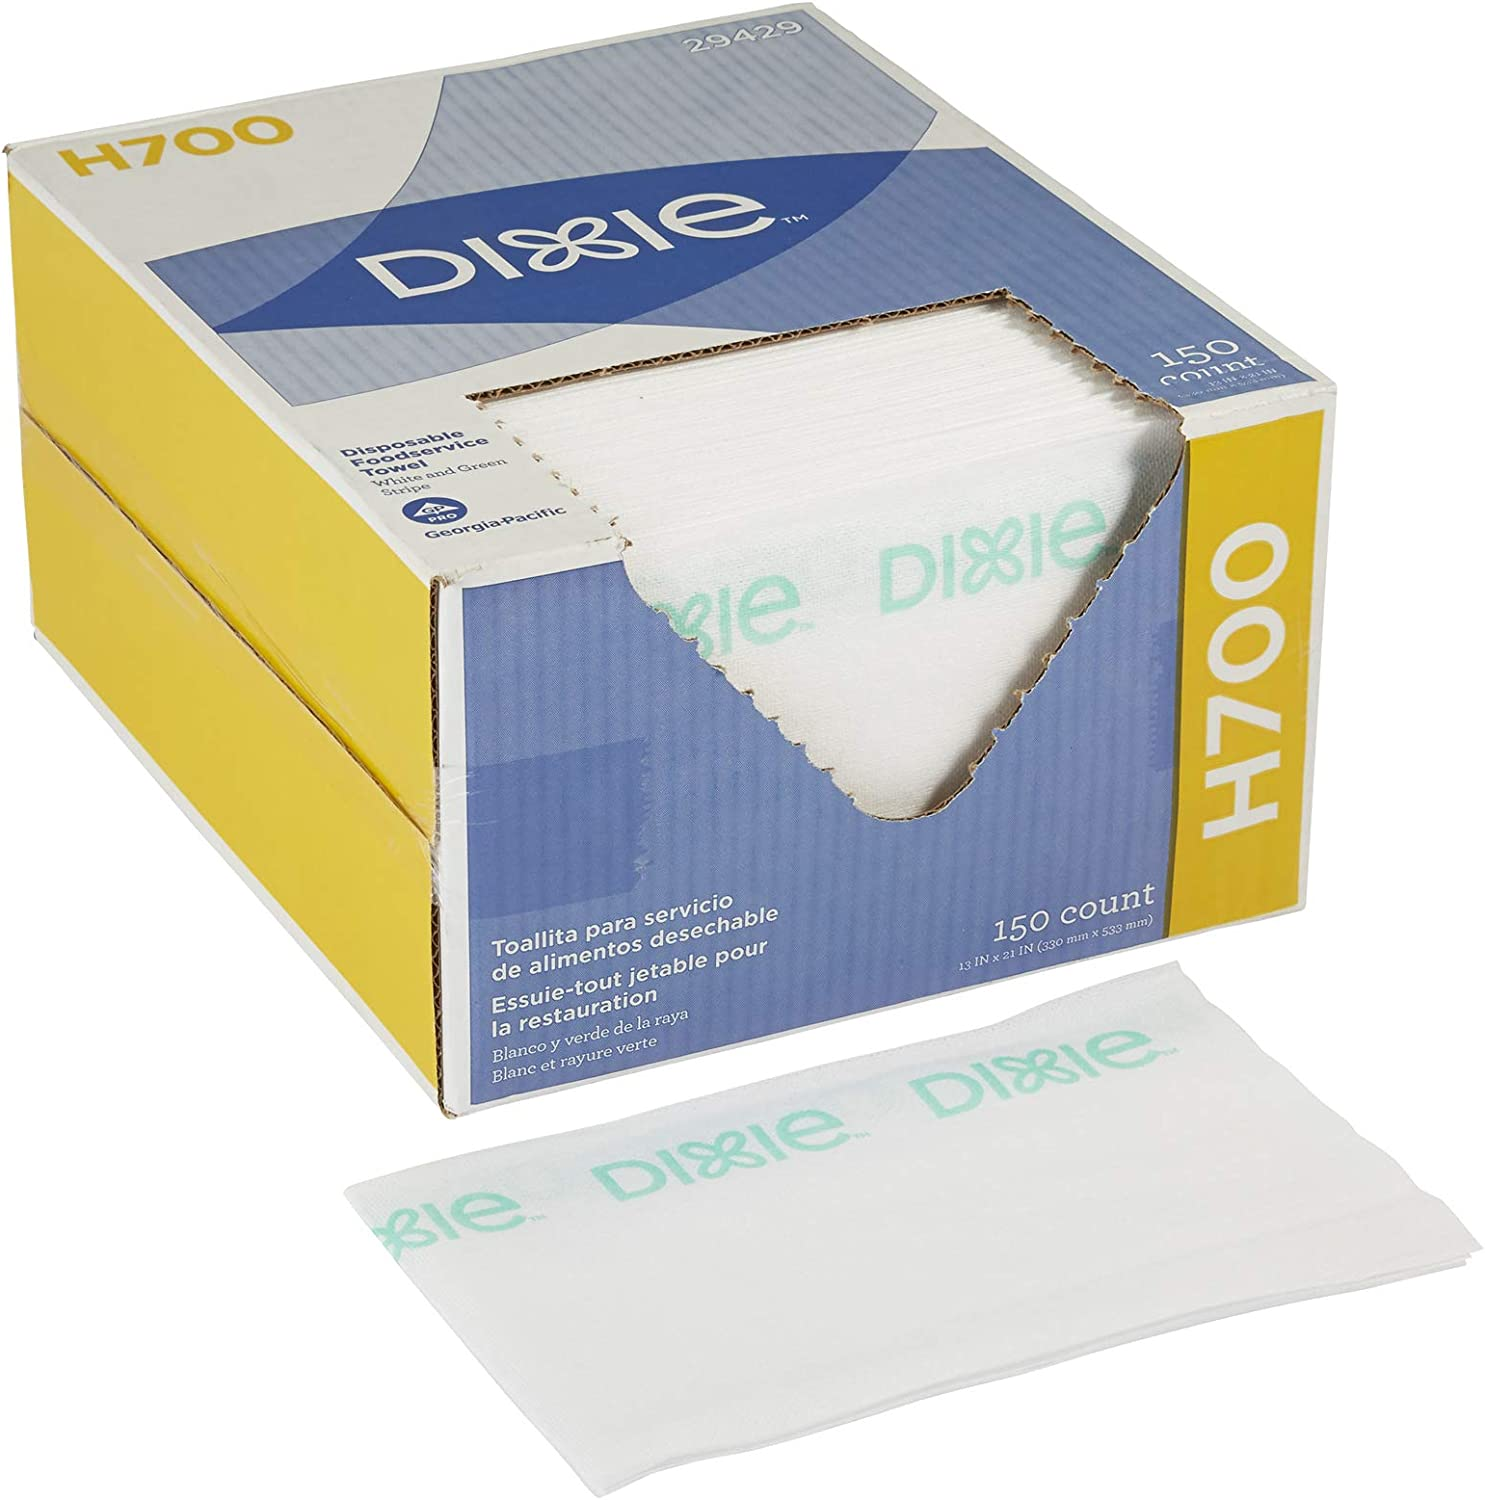 Dixie H700 Disposable Foodservice Towel by GP PRO (Georgia-Pacific), 29429, White & Green Stripe, 1 Box of 150 Wipers